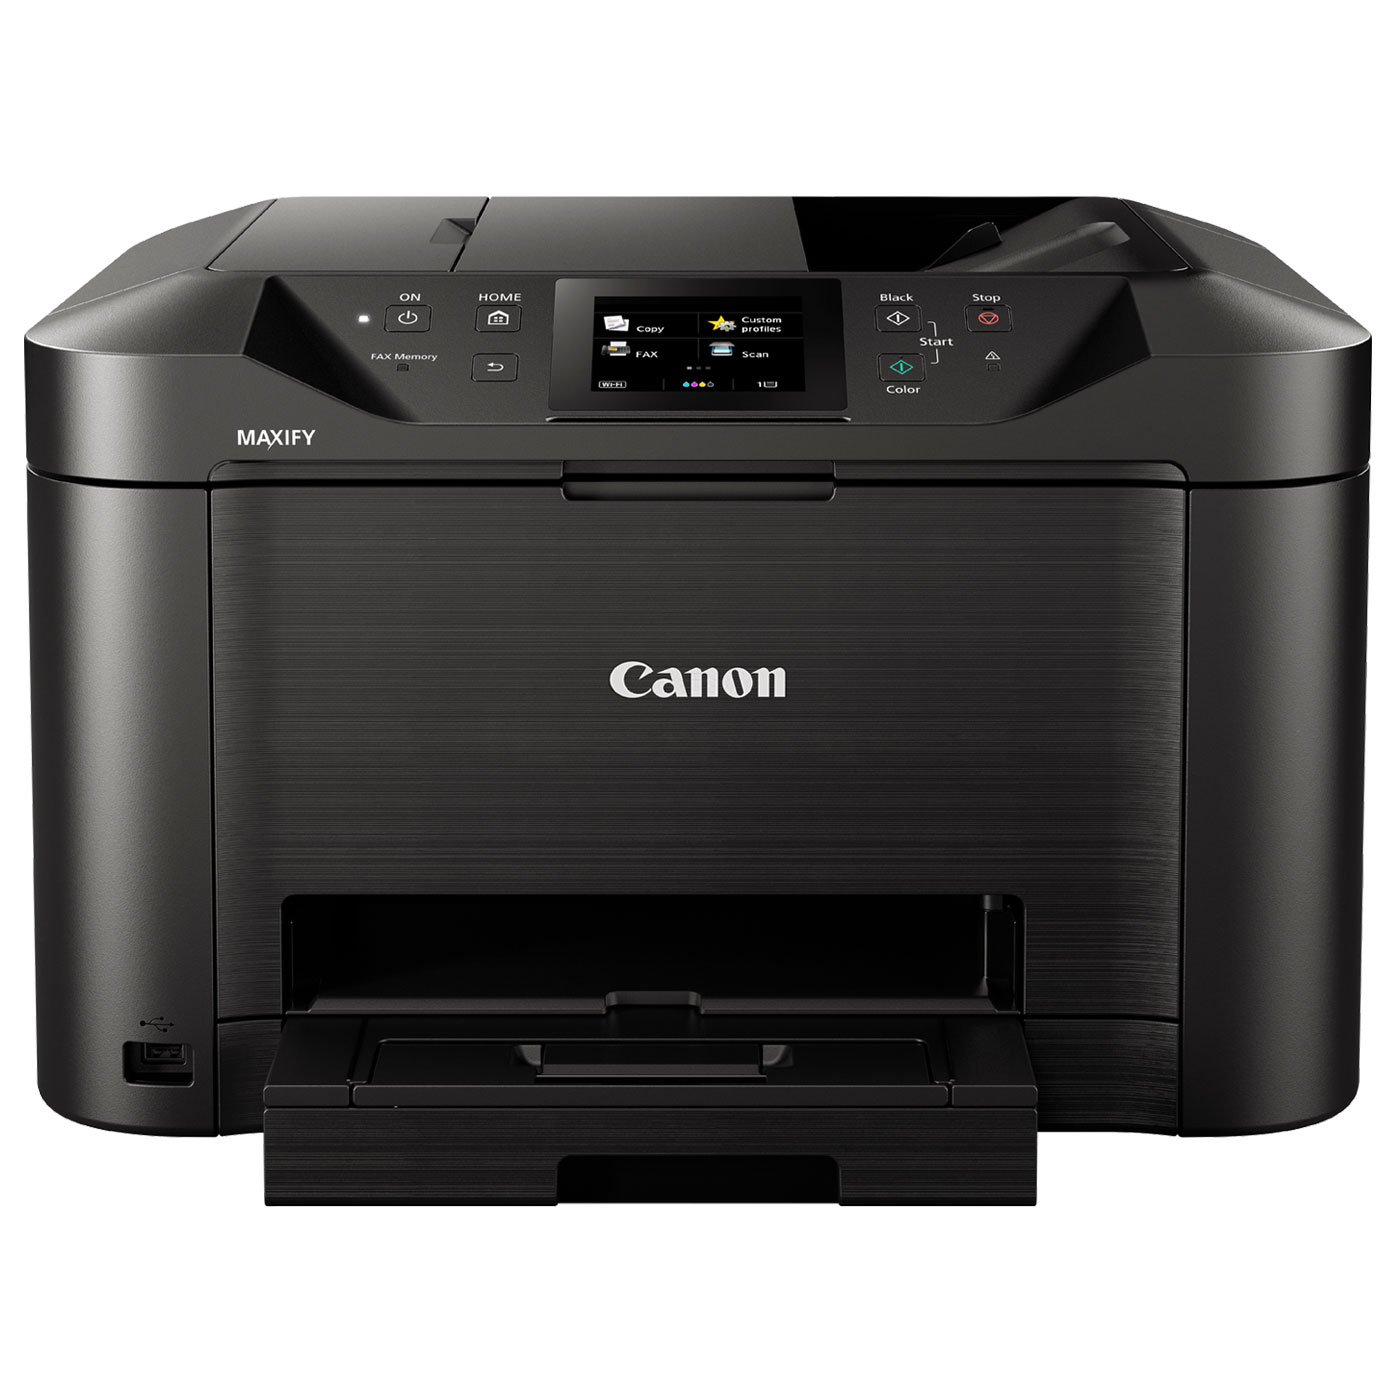 canon maxify mb5150 imprimante multifonction canon sur. Black Bedroom Furniture Sets. Home Design Ideas